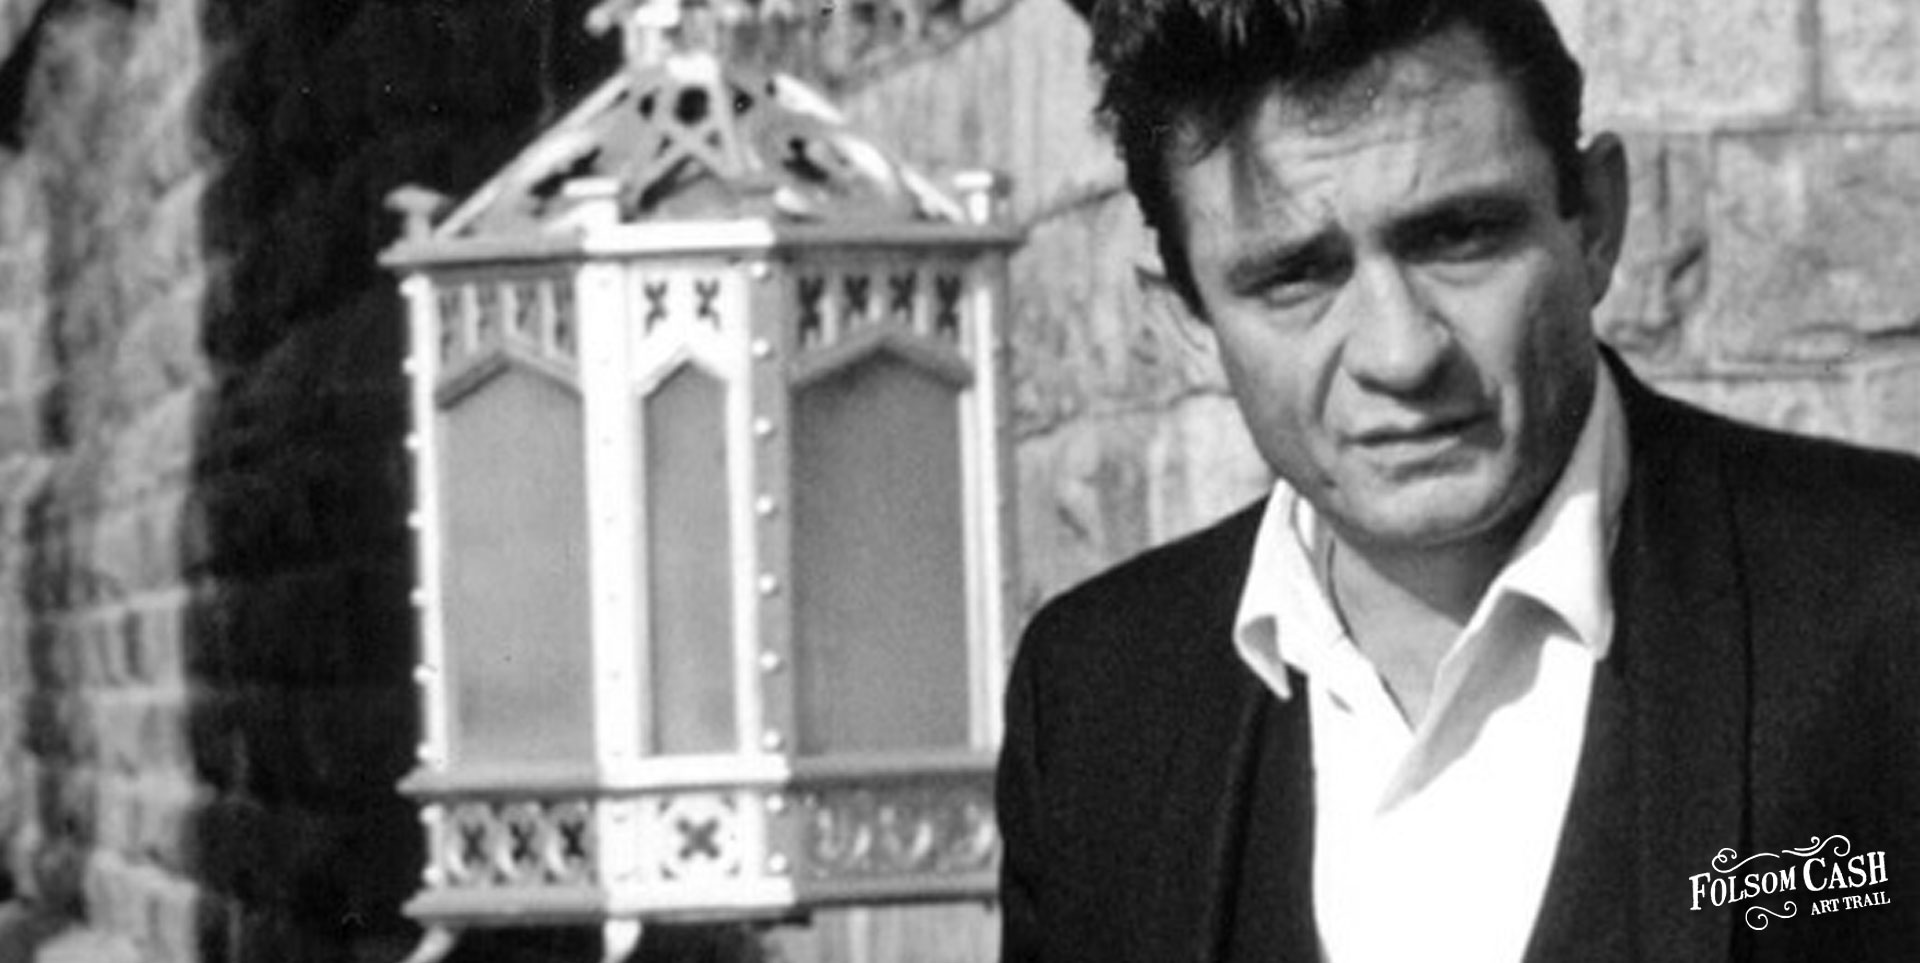 13 Fascinating Facts, Stories, and Tales about Folsom Prison